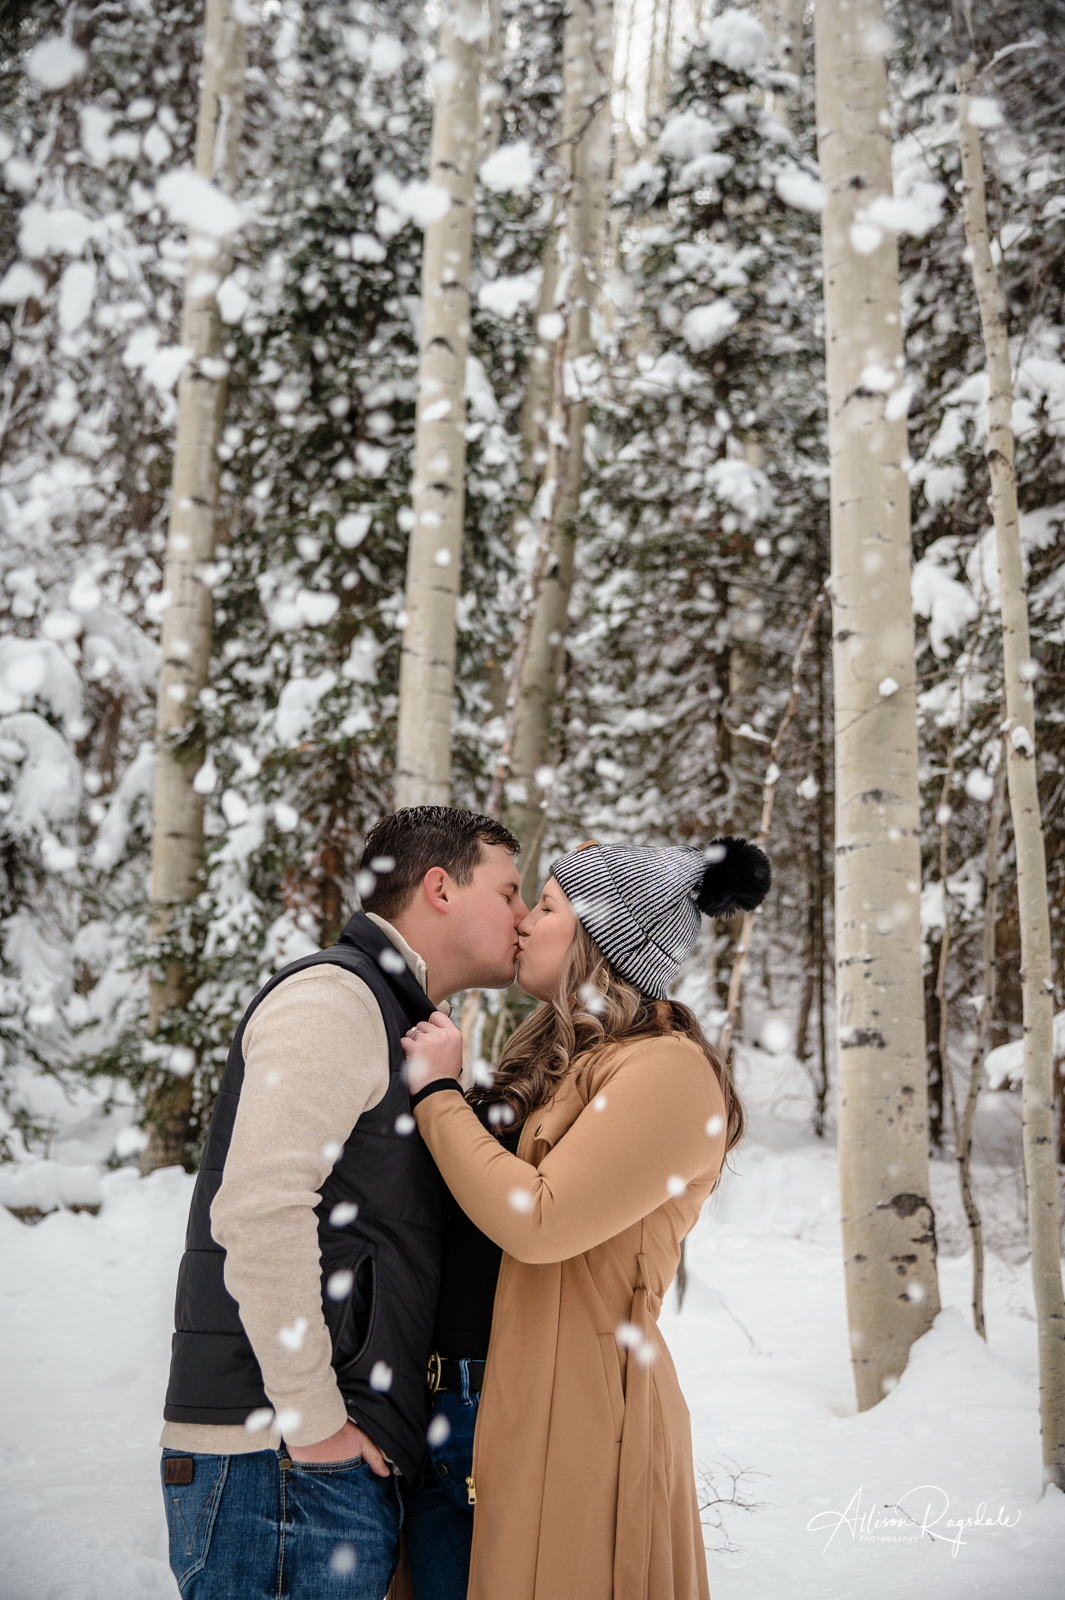 Logan & Tanner's Winter Mountain Engagement Session